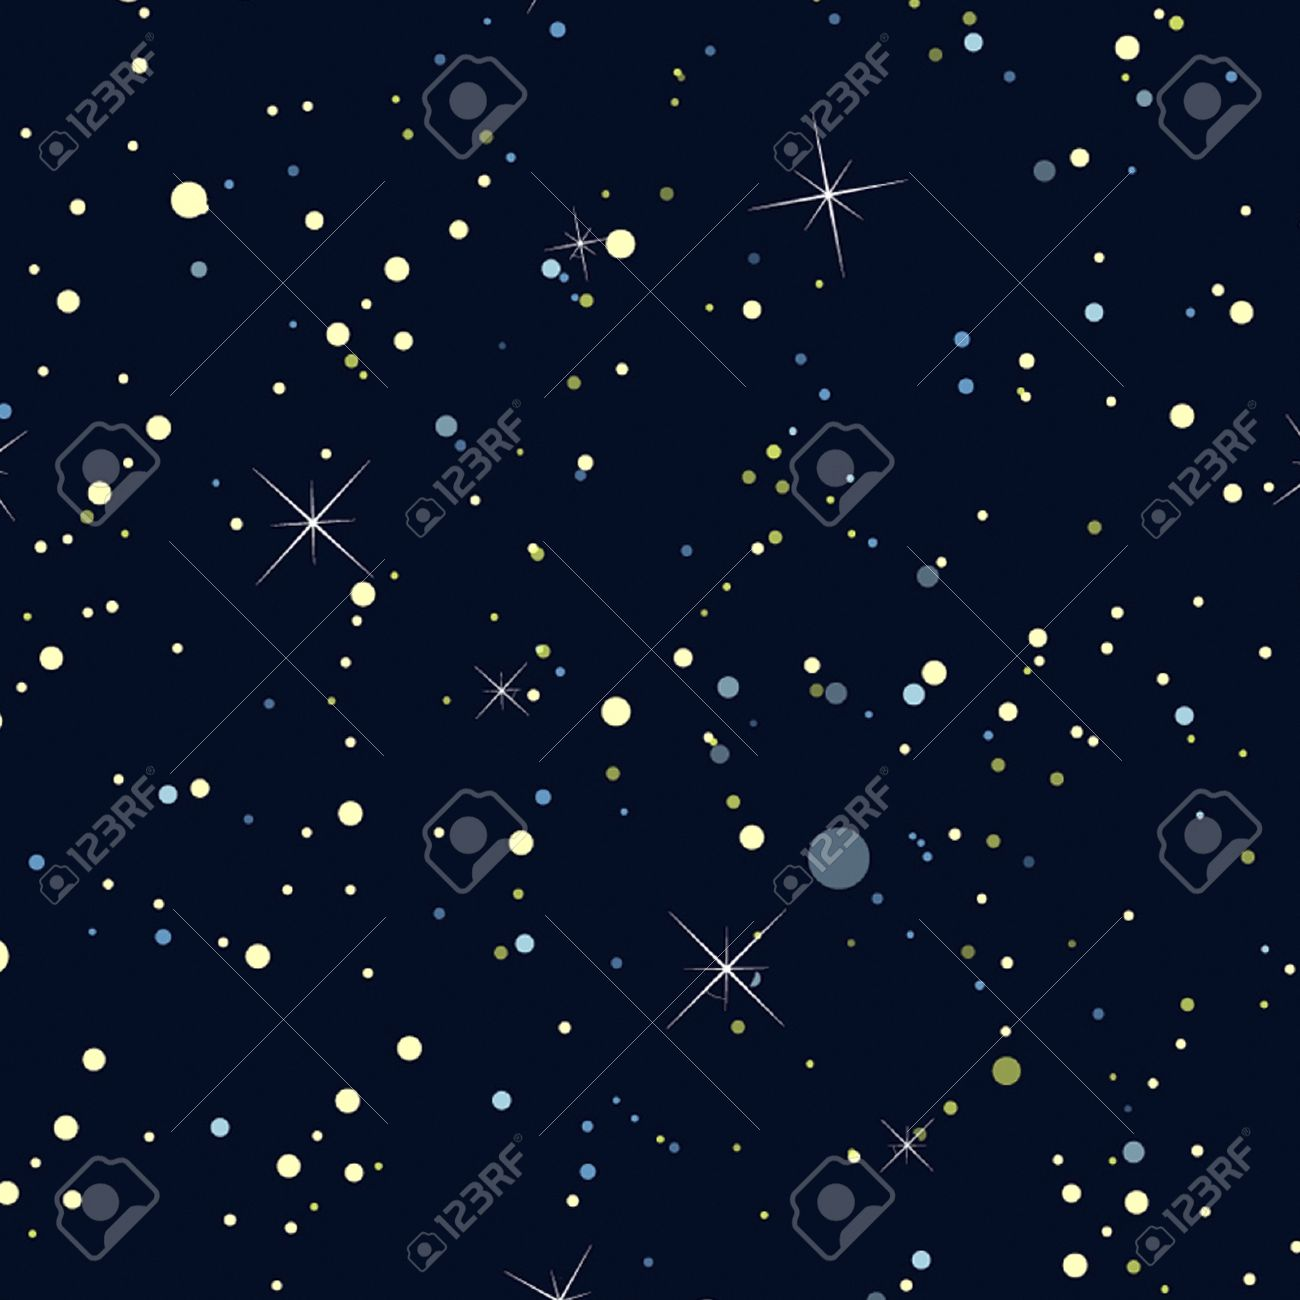 Night Sky with Stars Seamless  background, wallpaper Stock Vector - 14589242